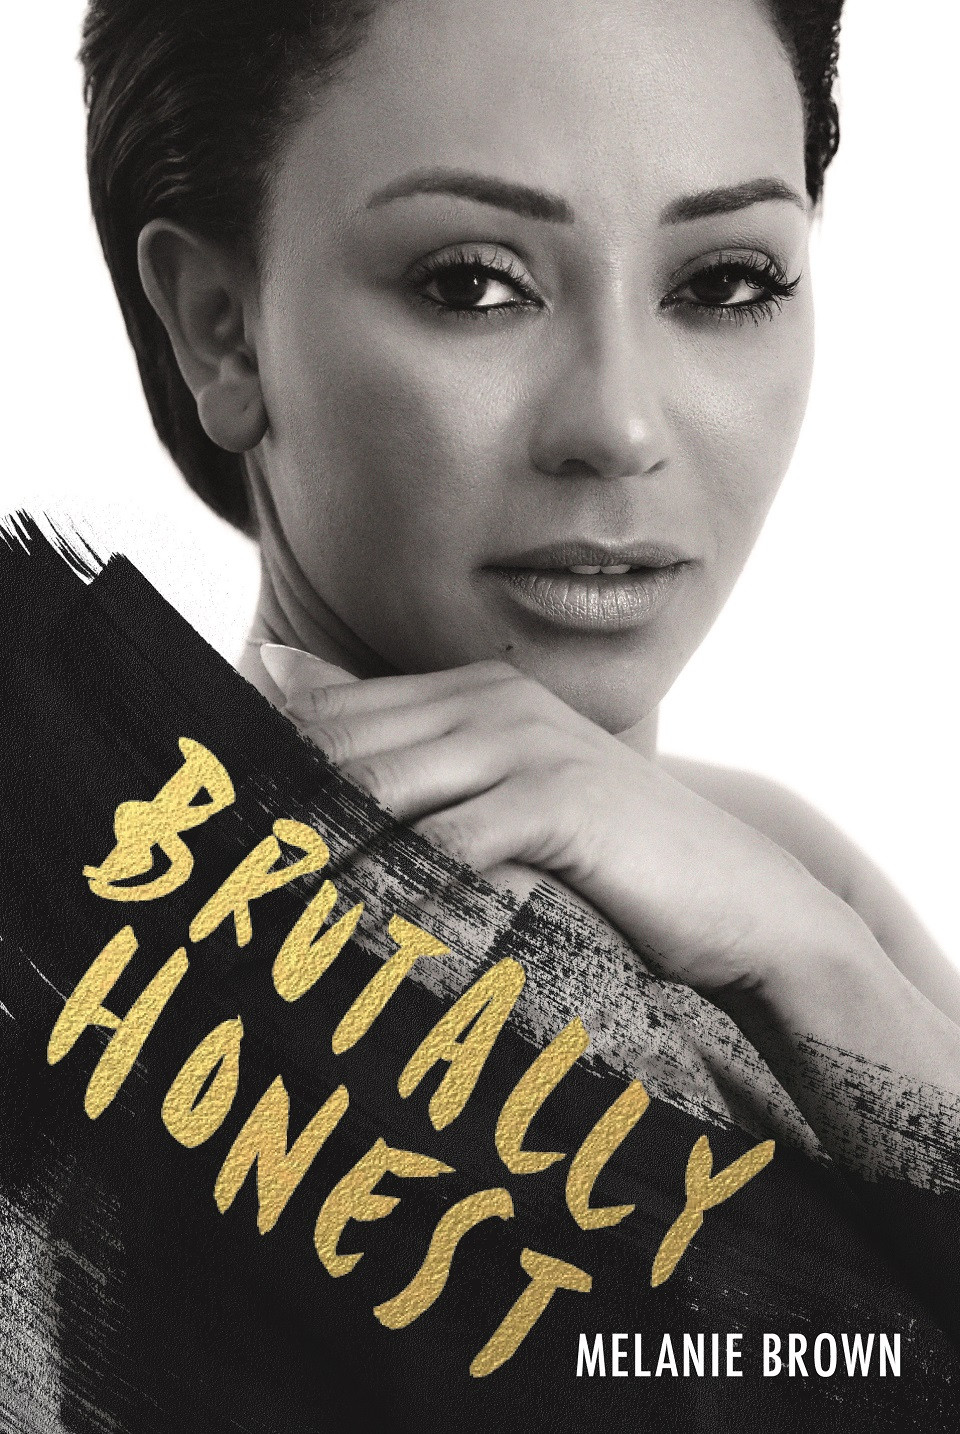 Mel B on Sex, Drugs, Abuse & Her Epic Healing Journey